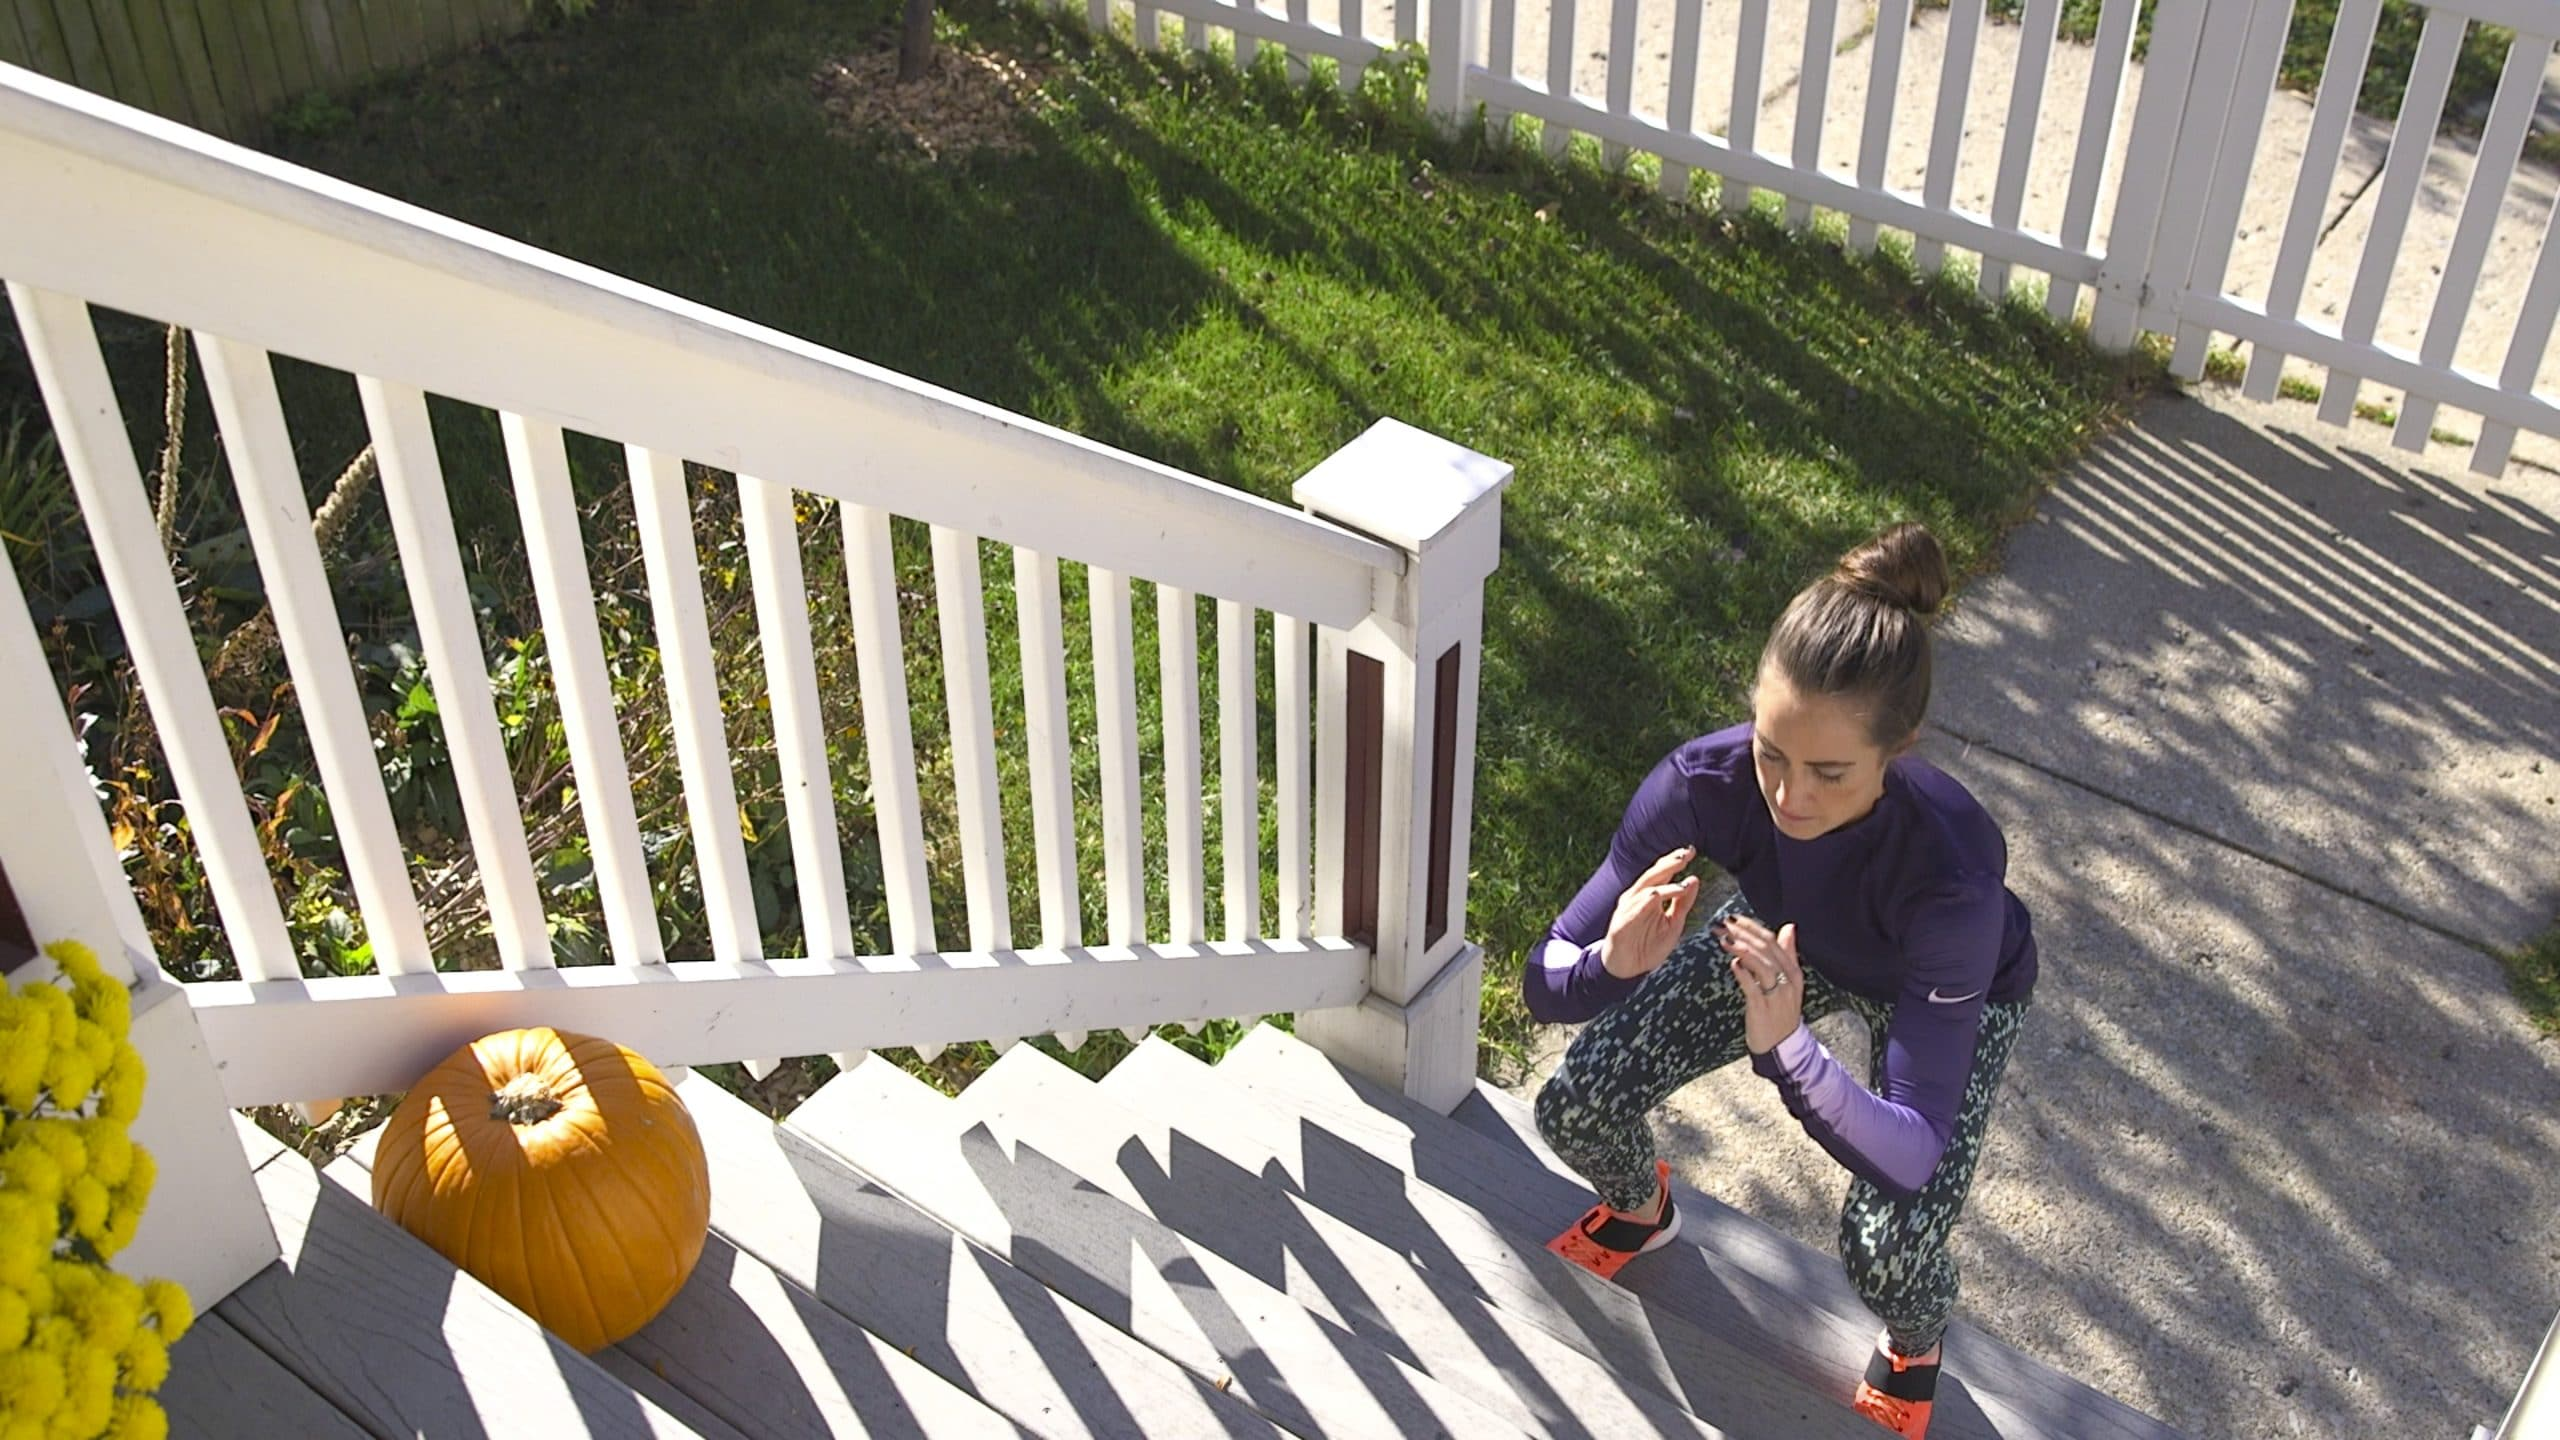 Nikki Metzger HIIT exercise routine on a stairway in the Autumn.